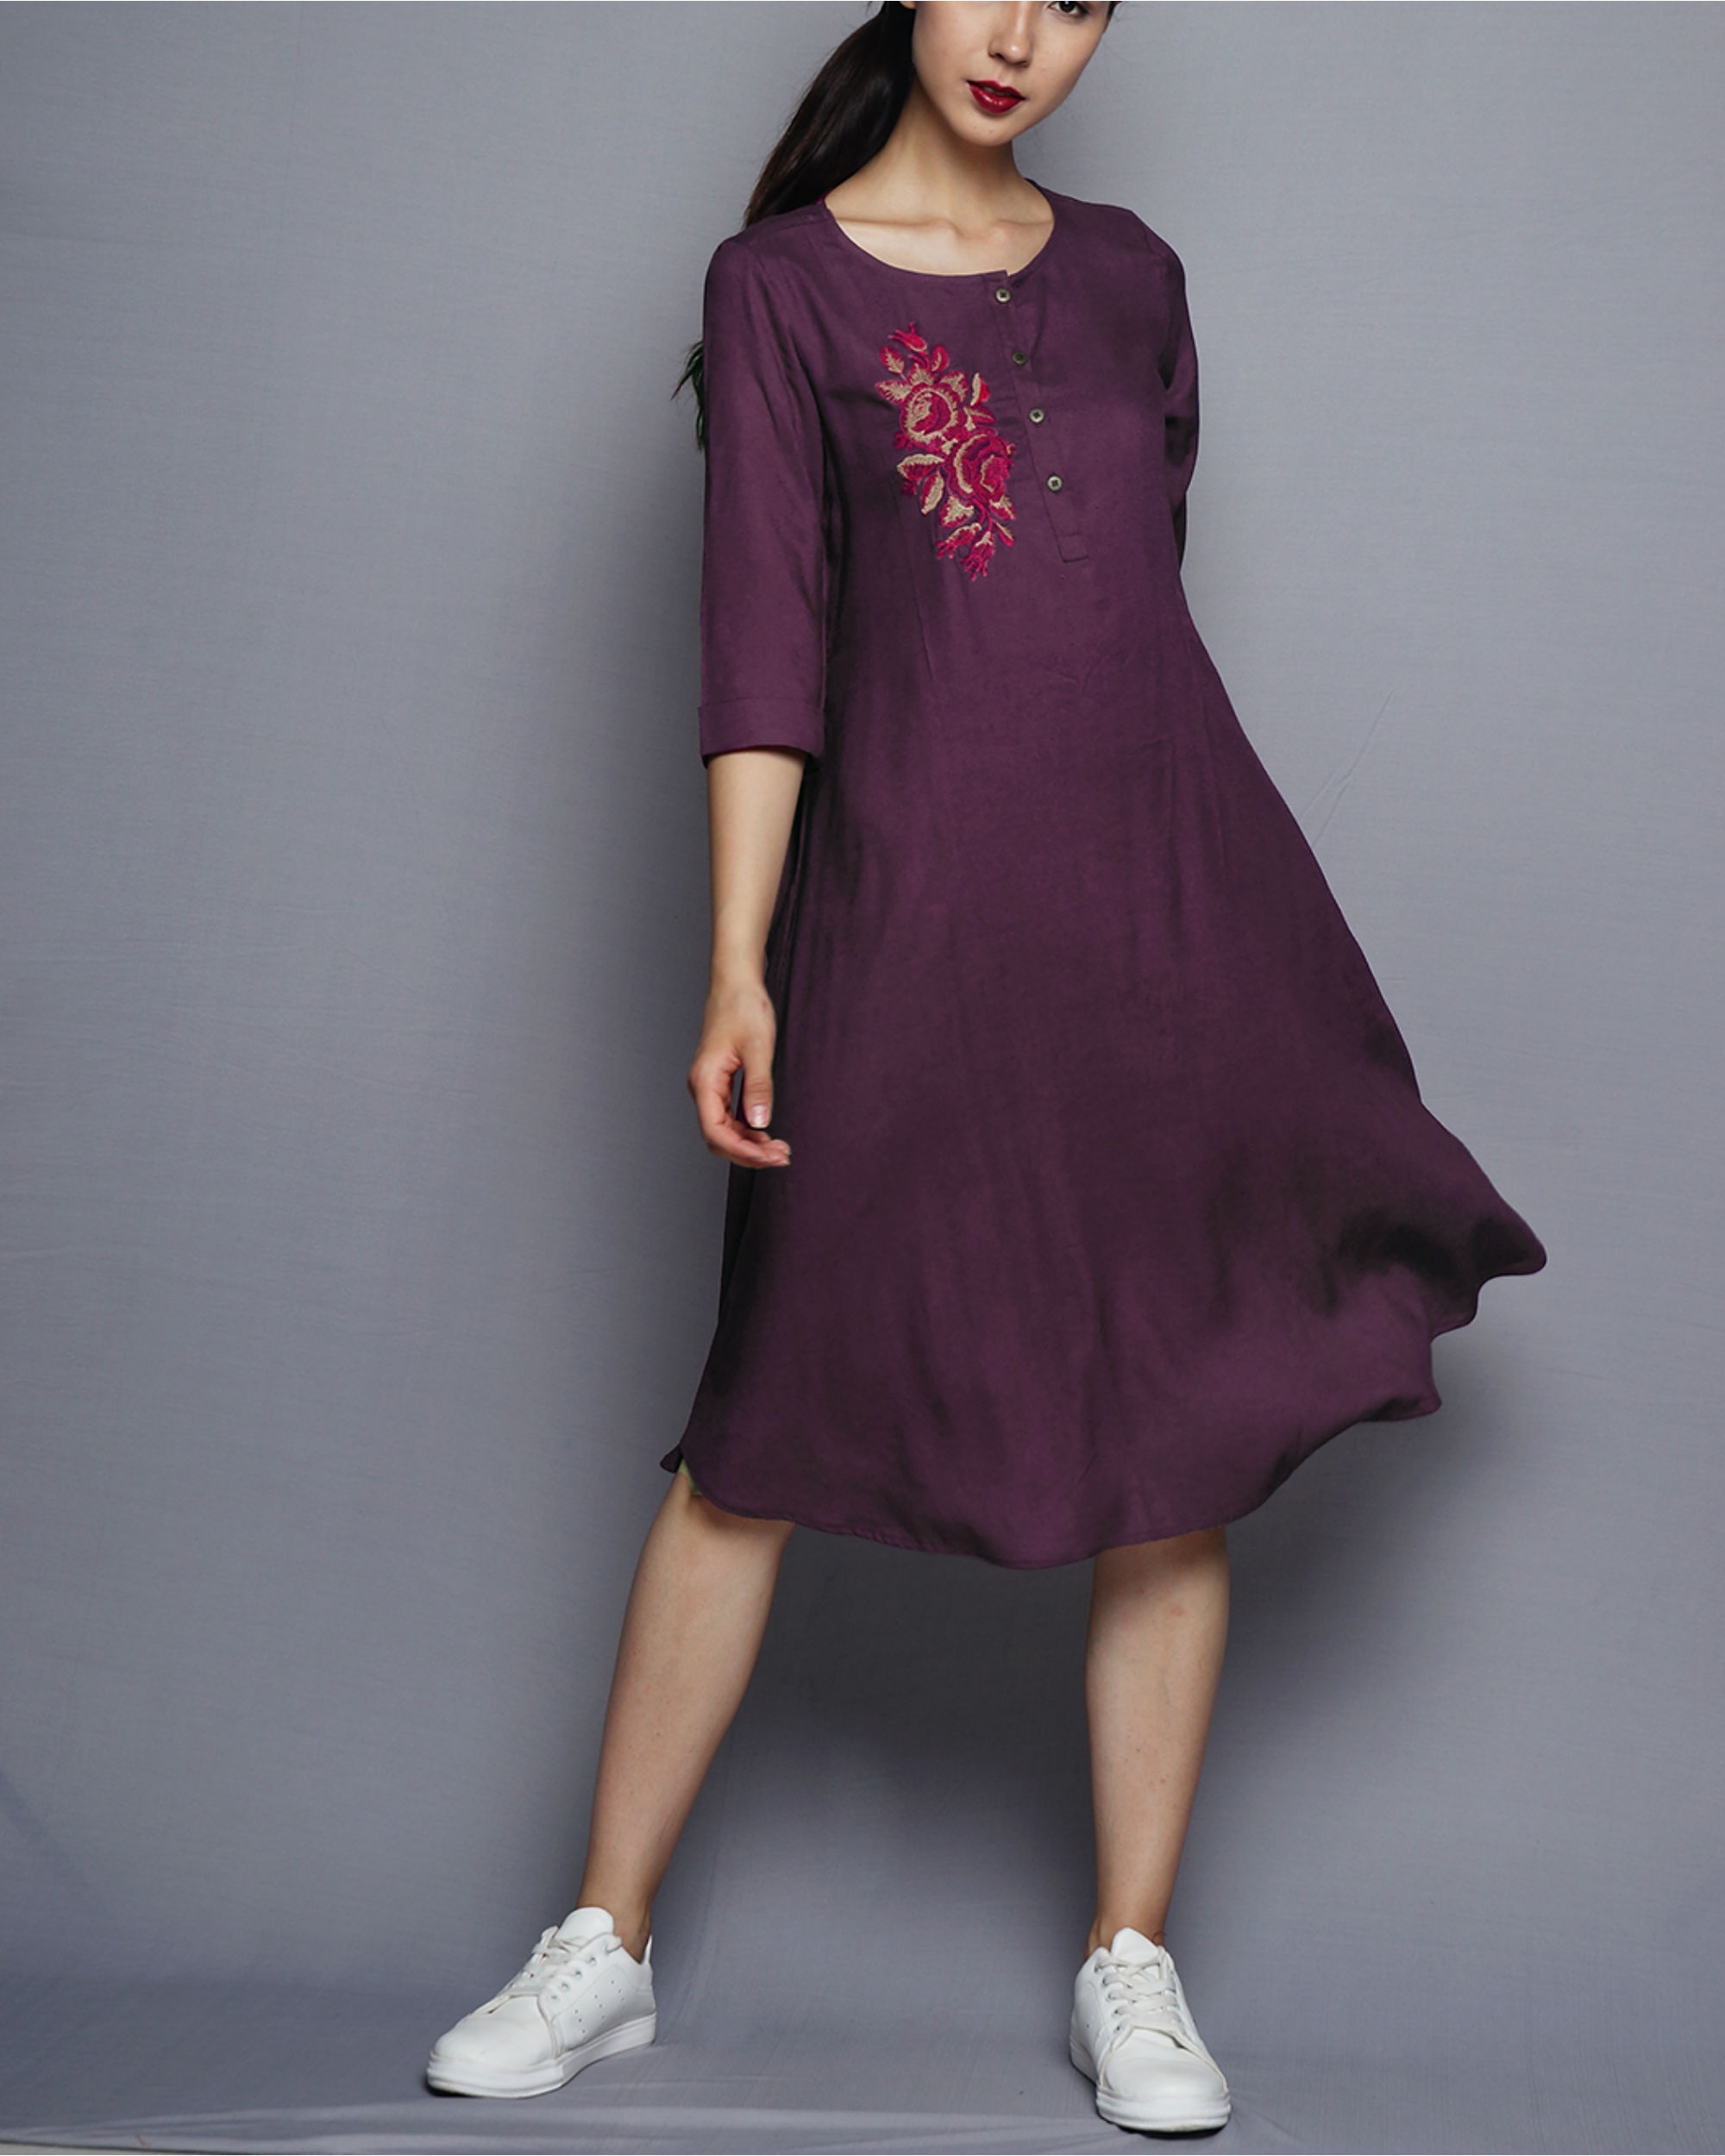 a72bb9bf879 Purple flared tunic by UNTUNG | The Secret Label